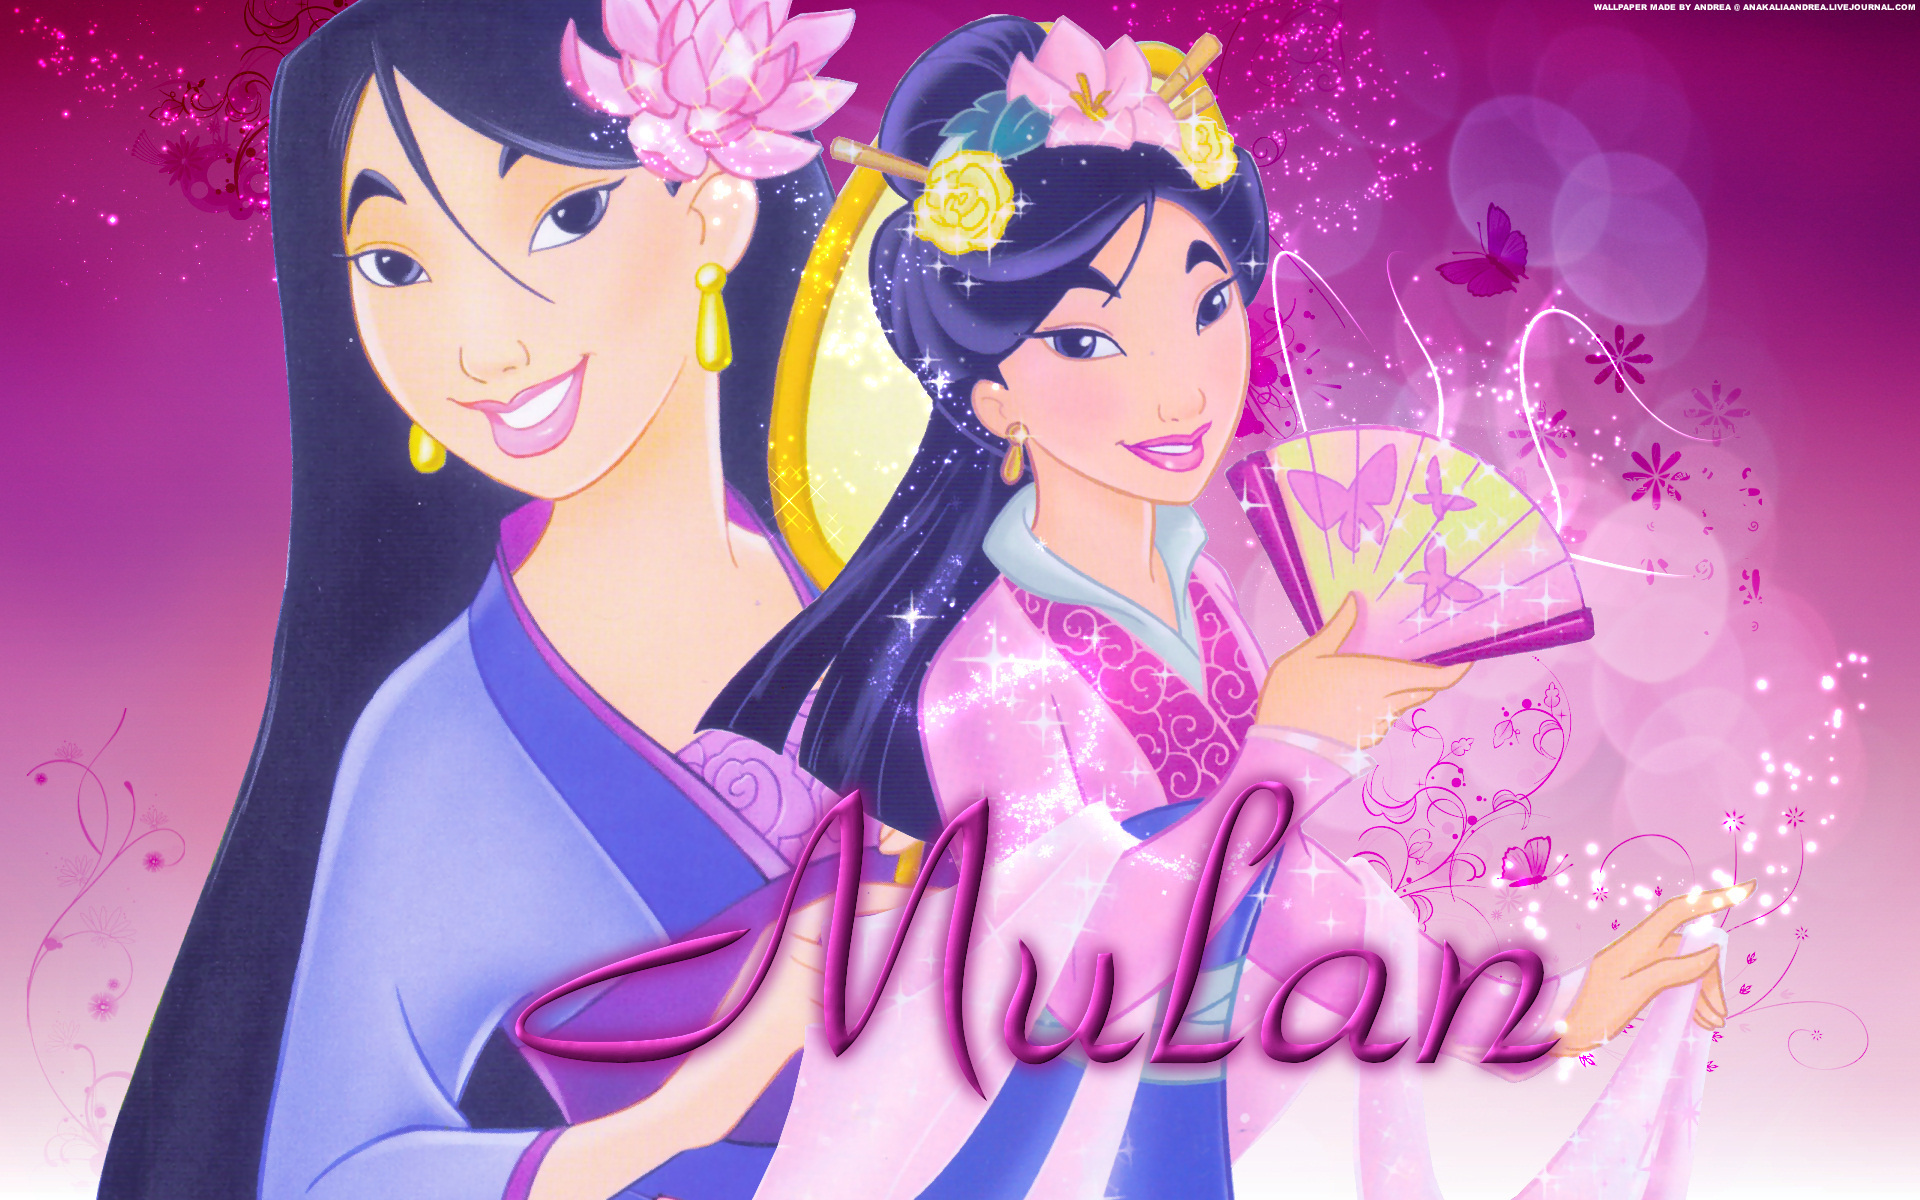 Prinzessin Mulan Malvorlagen Pictures to pin on Pinterest